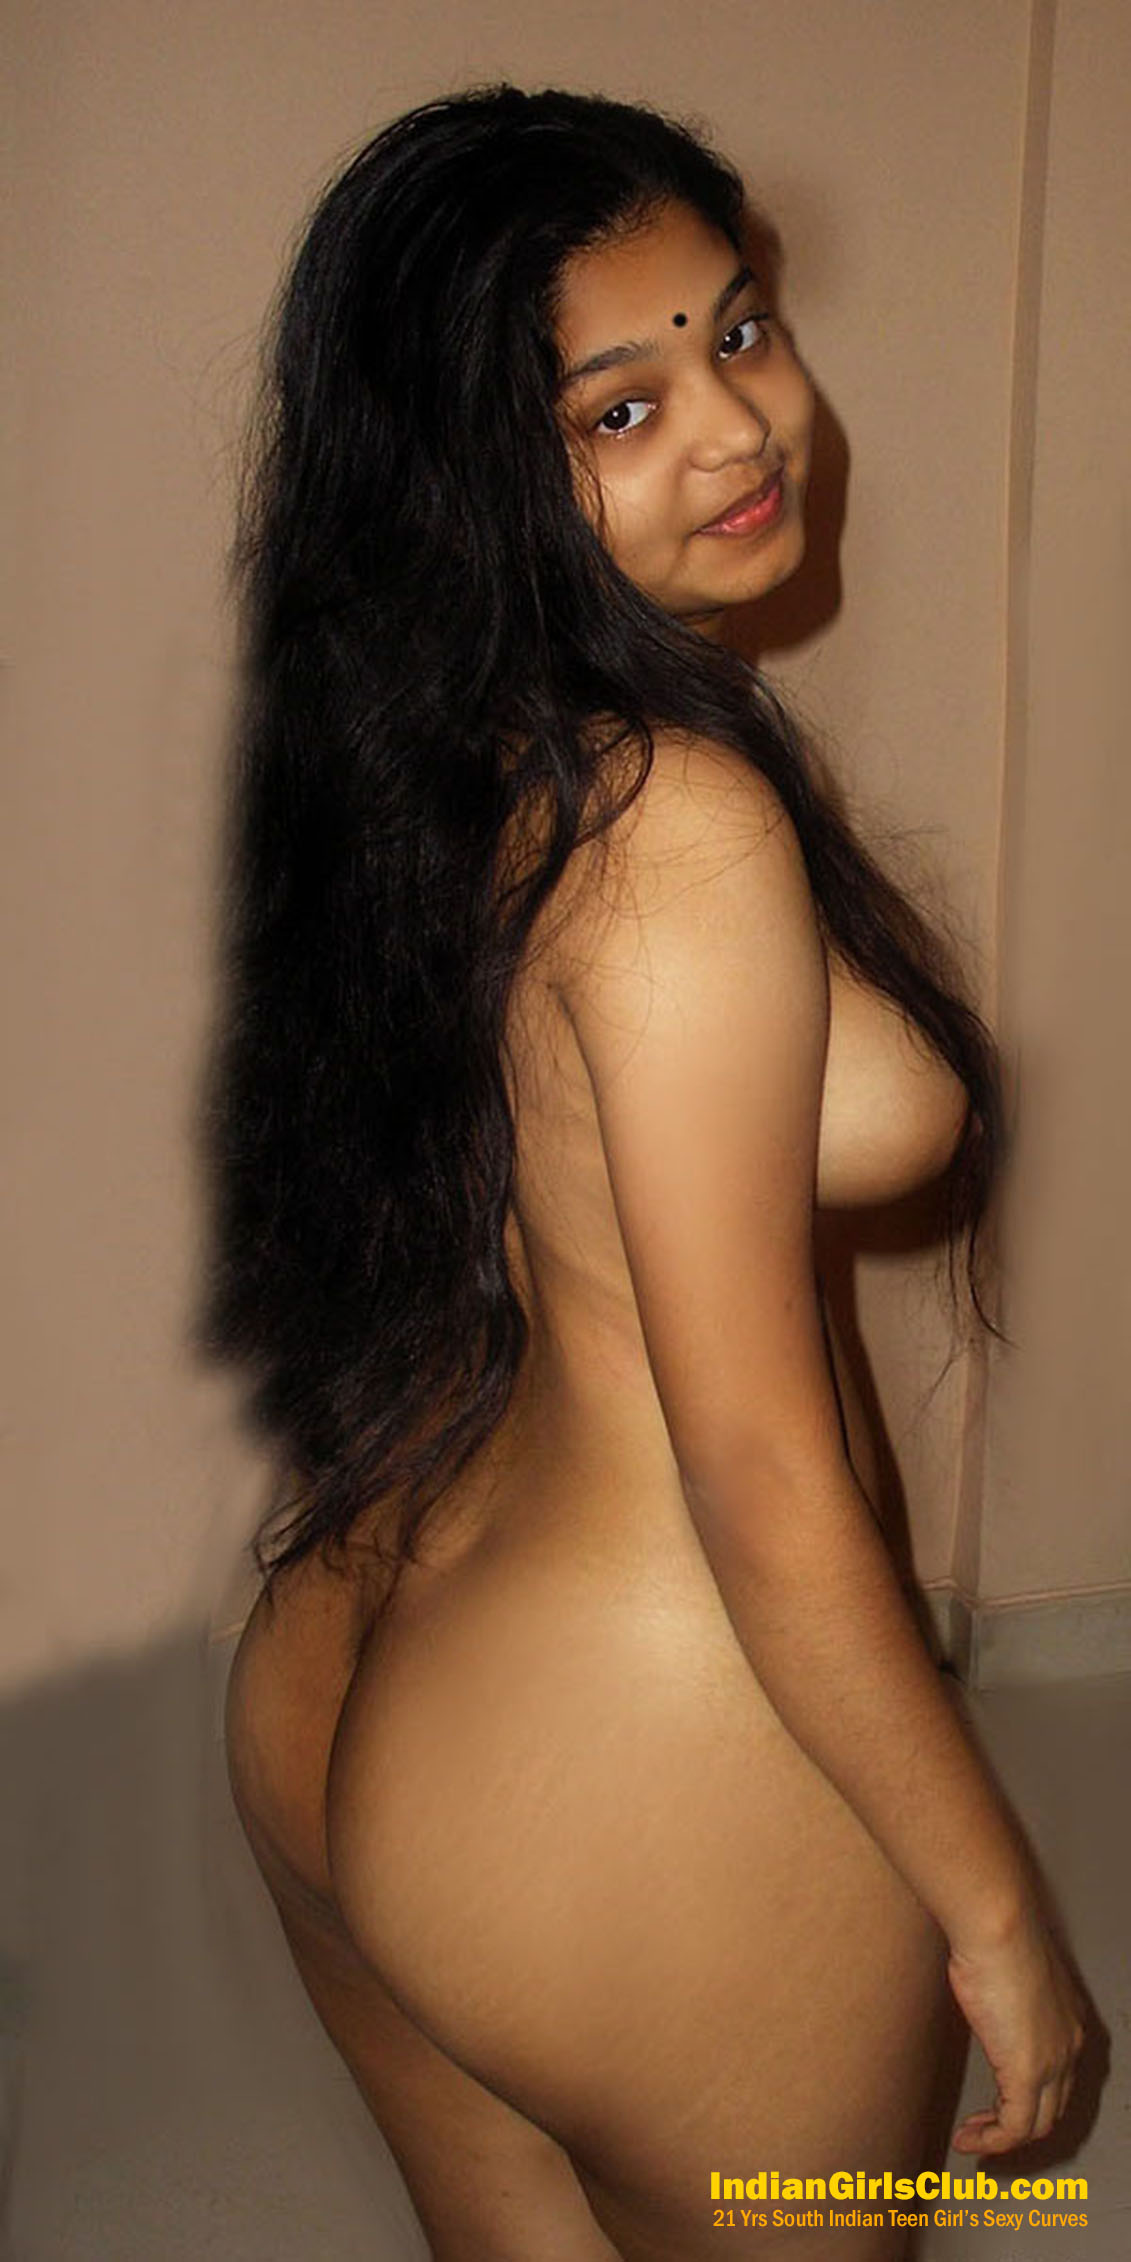 Puja girl nude photo bathing